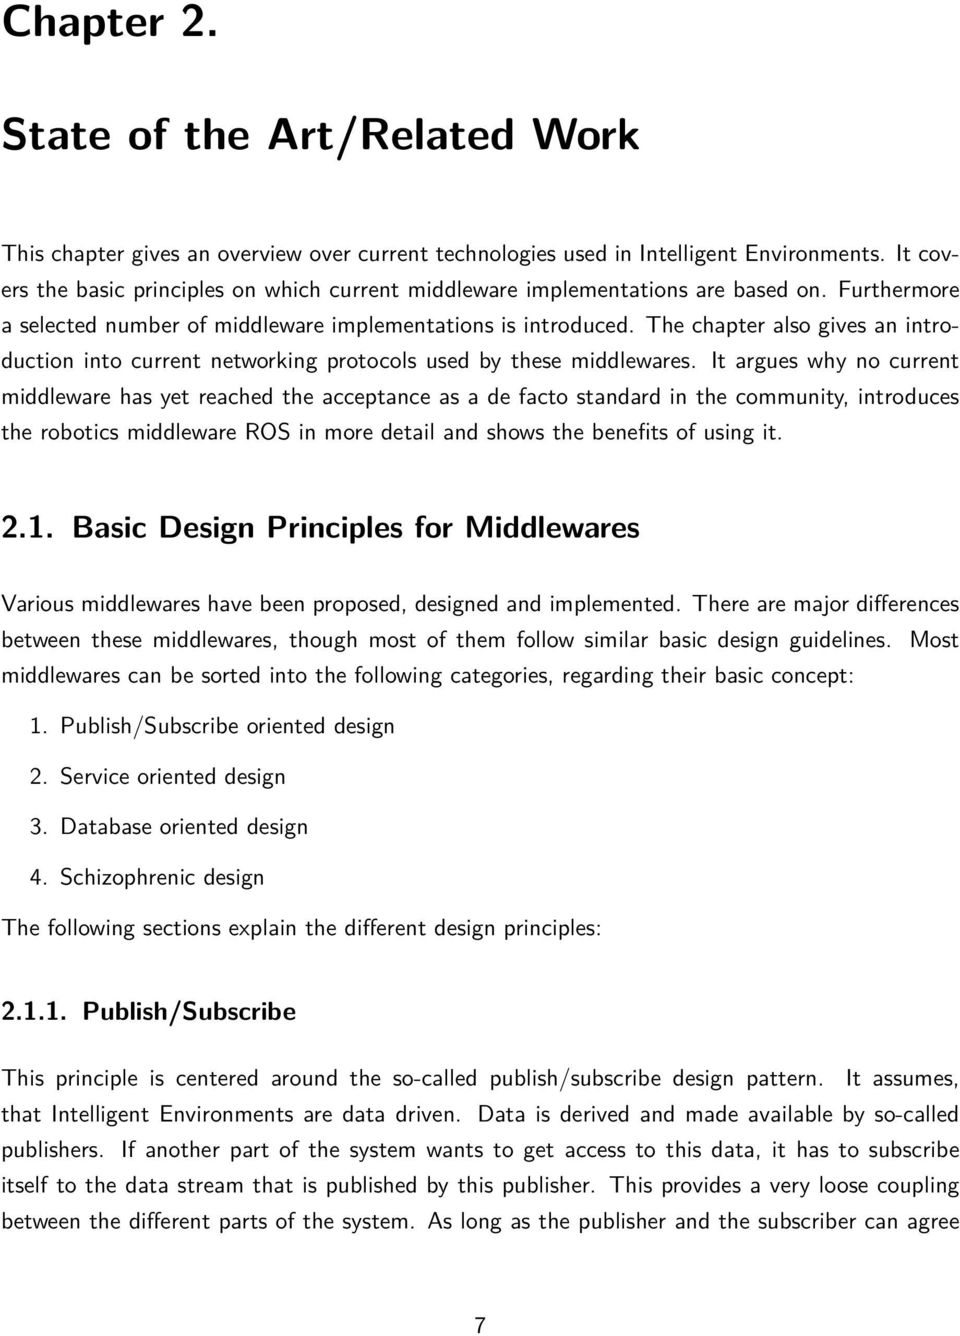 The chapter also gives an introduction into current networking protocols used by these middlewares.